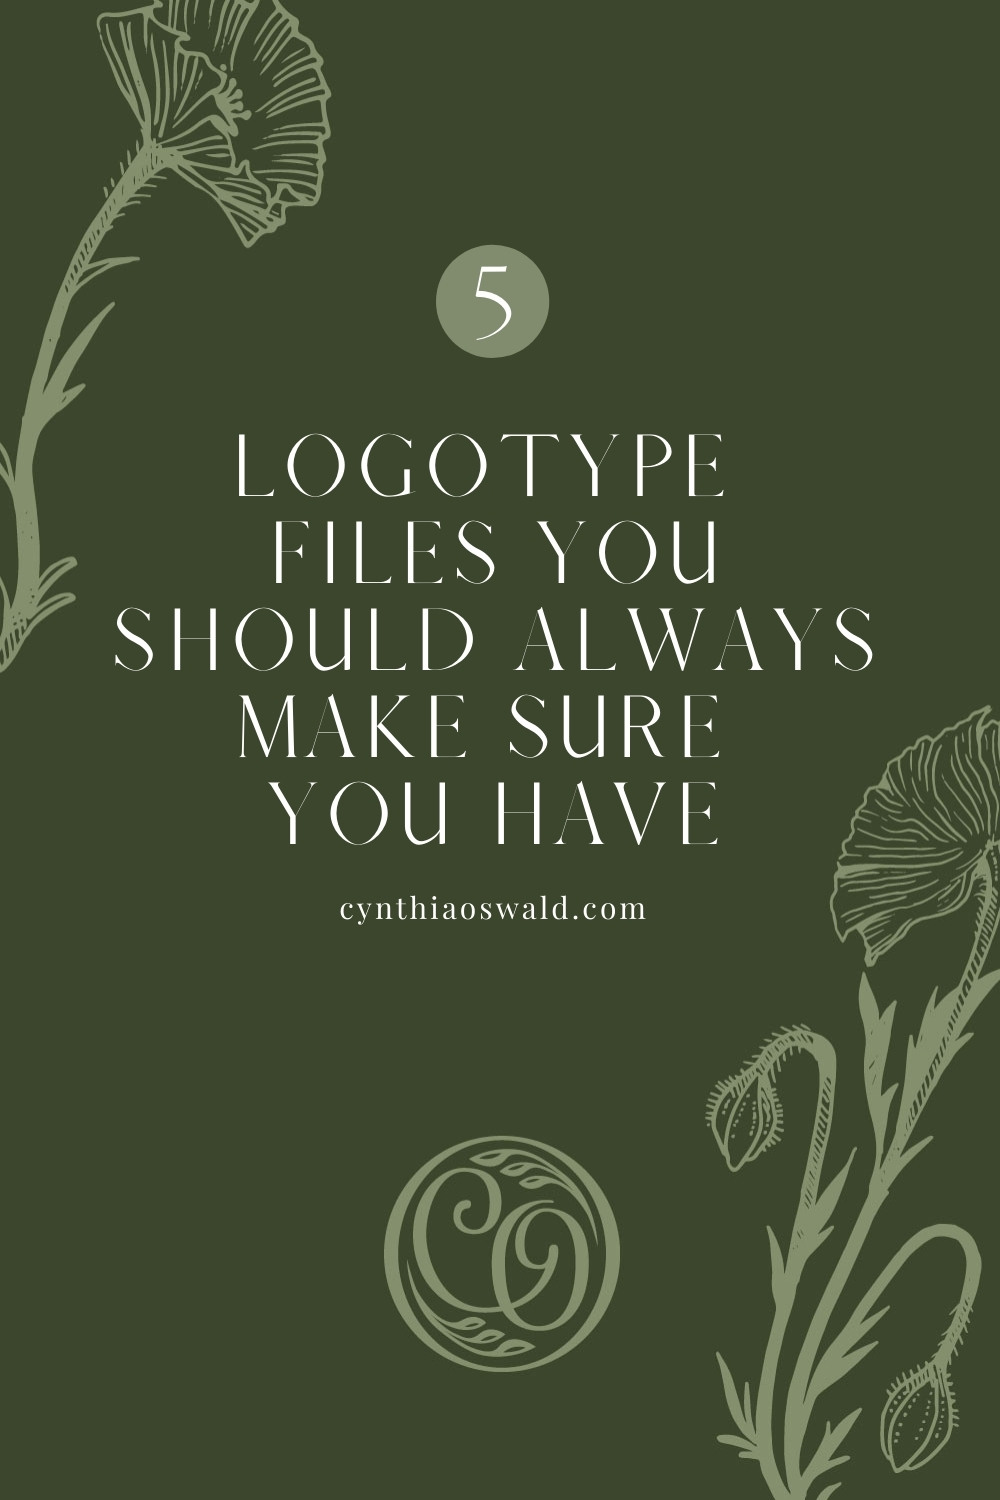 5 Logotype Files You Should Always Make Sure You Have